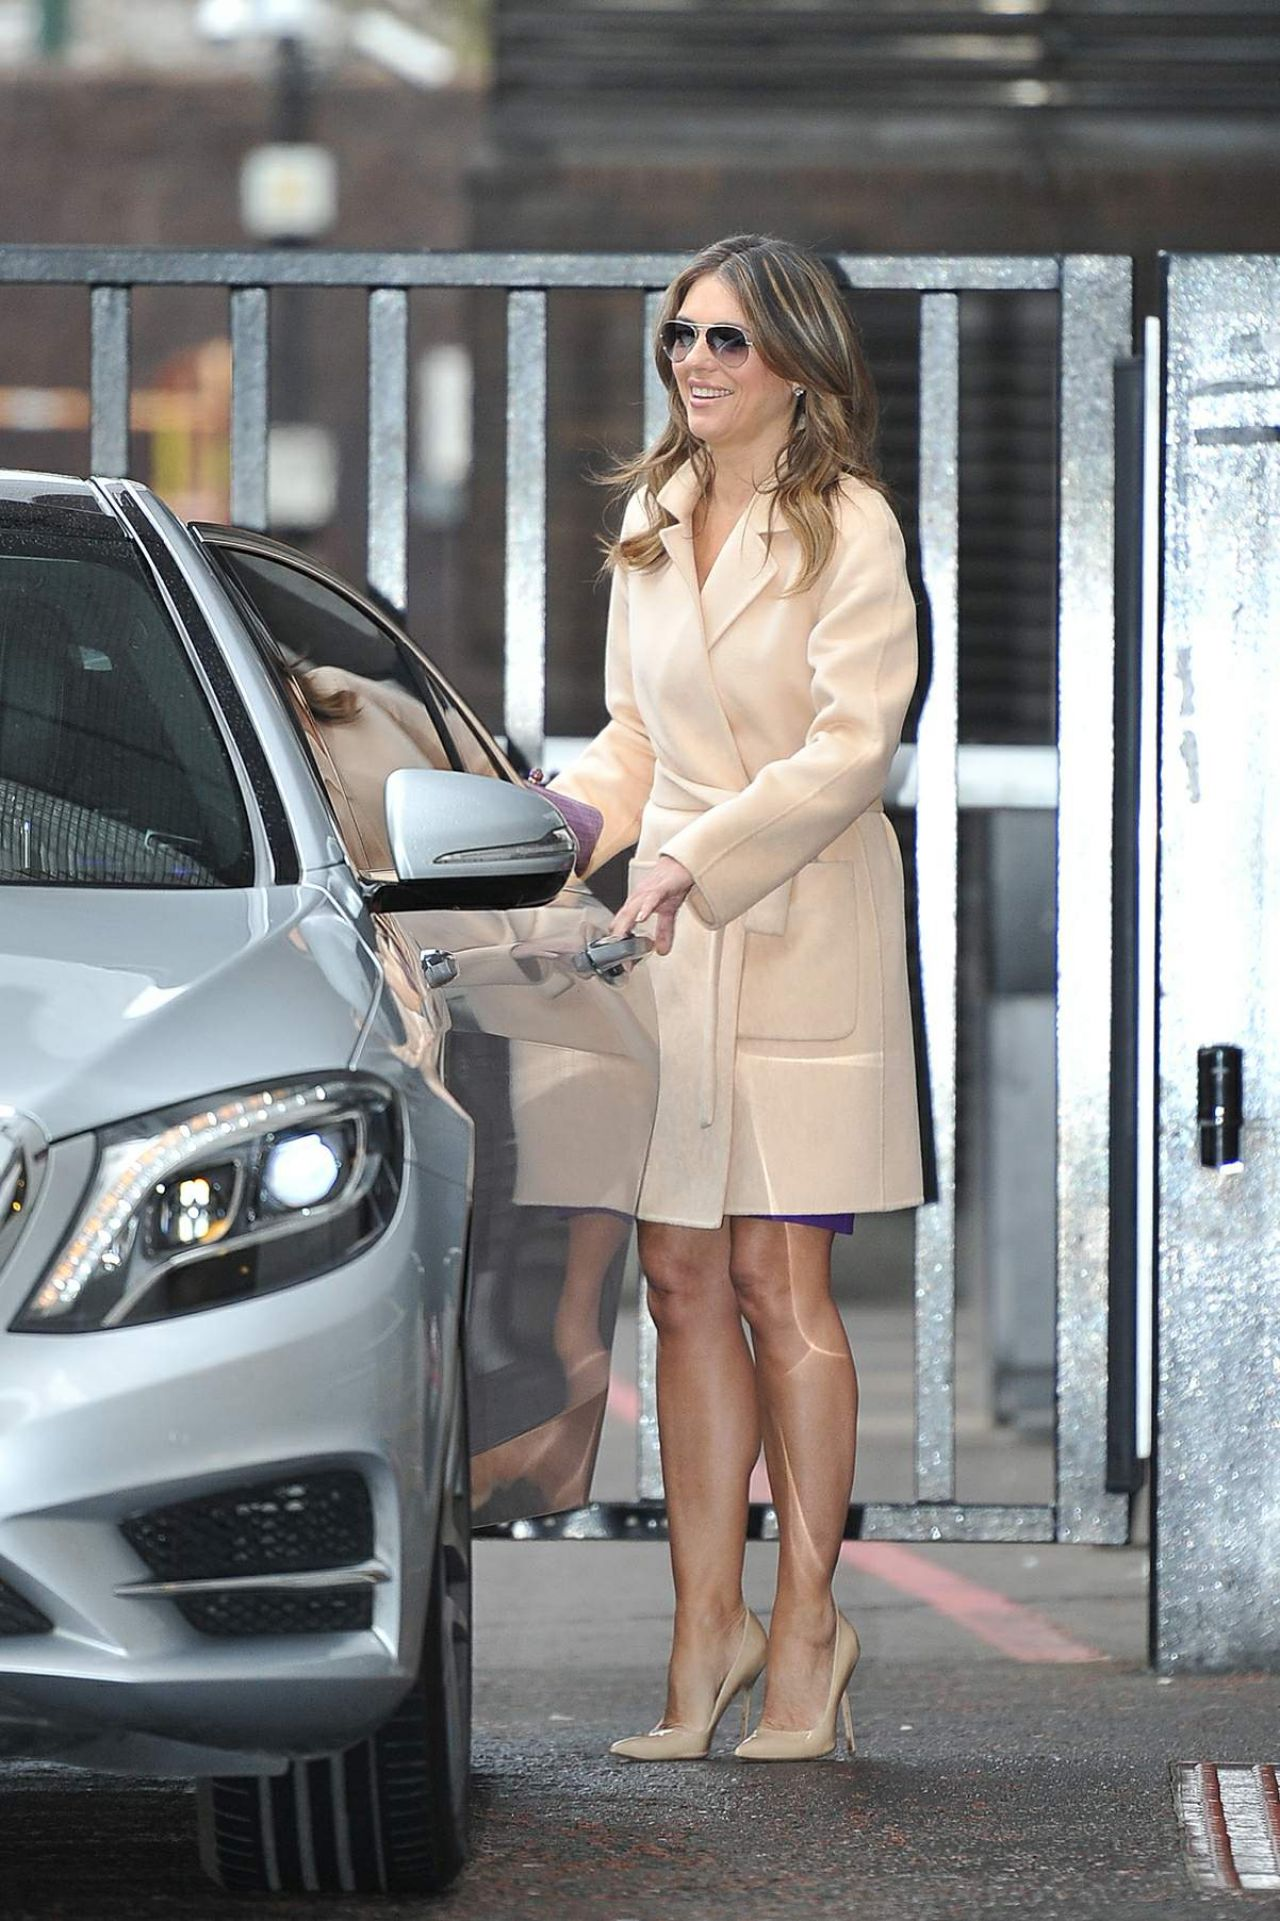 Elizabeth Hurley Style Arriving For An Interview On The